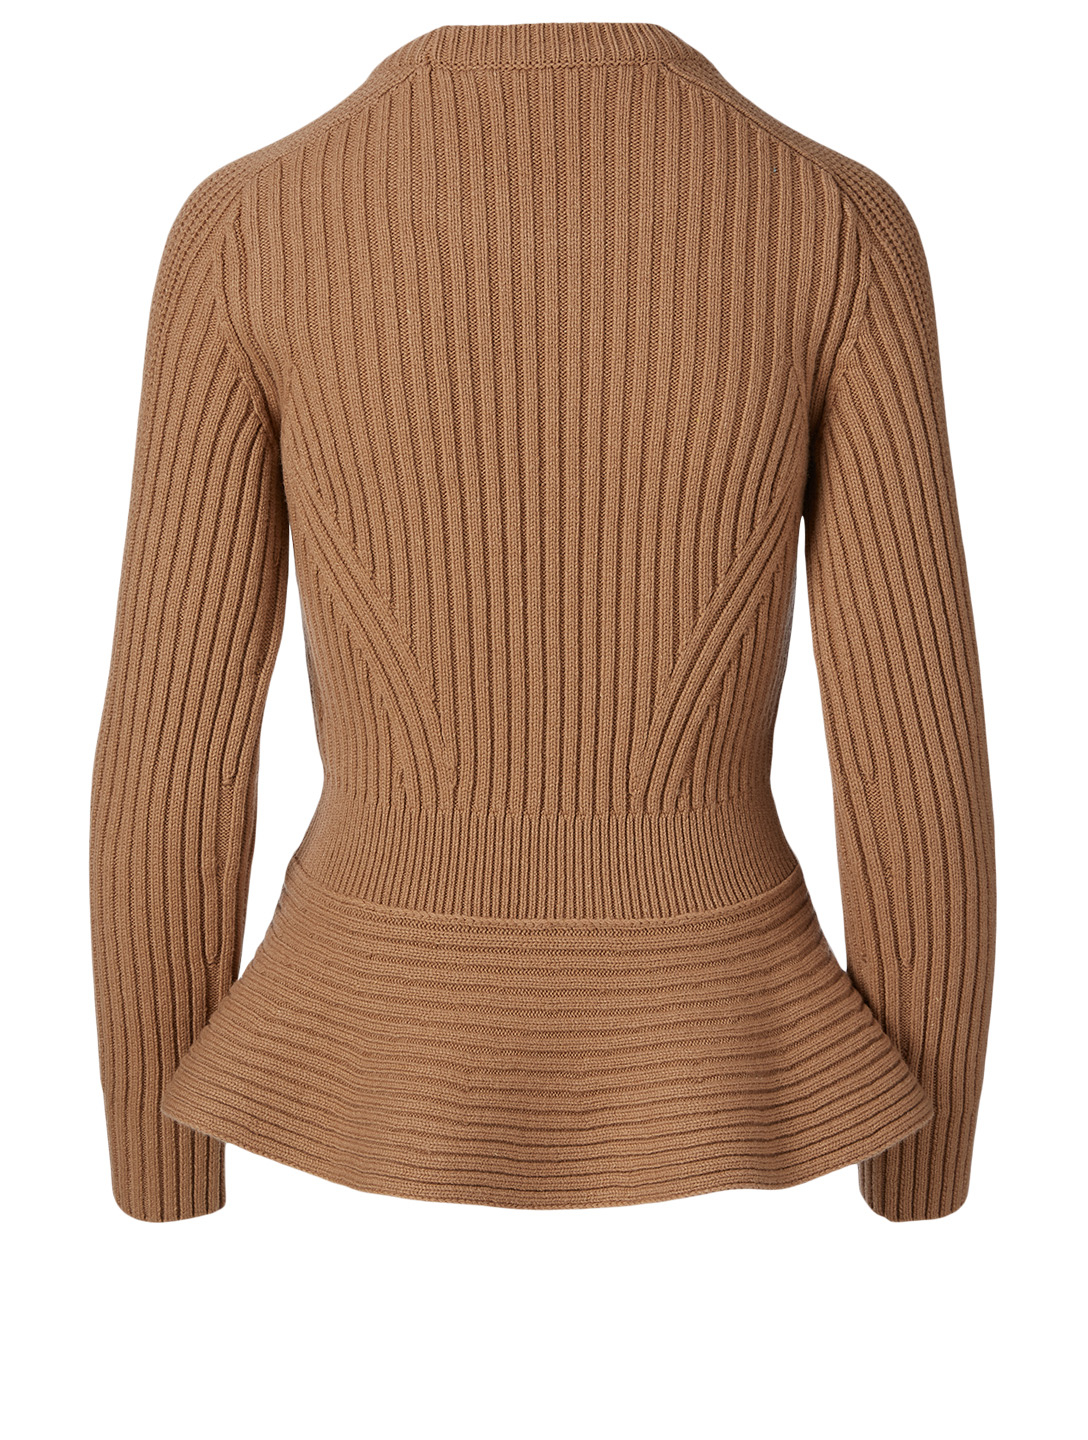 ALEXANDER MCQUEEN Wool And Cashmere Peplum Sweater Women's Beige